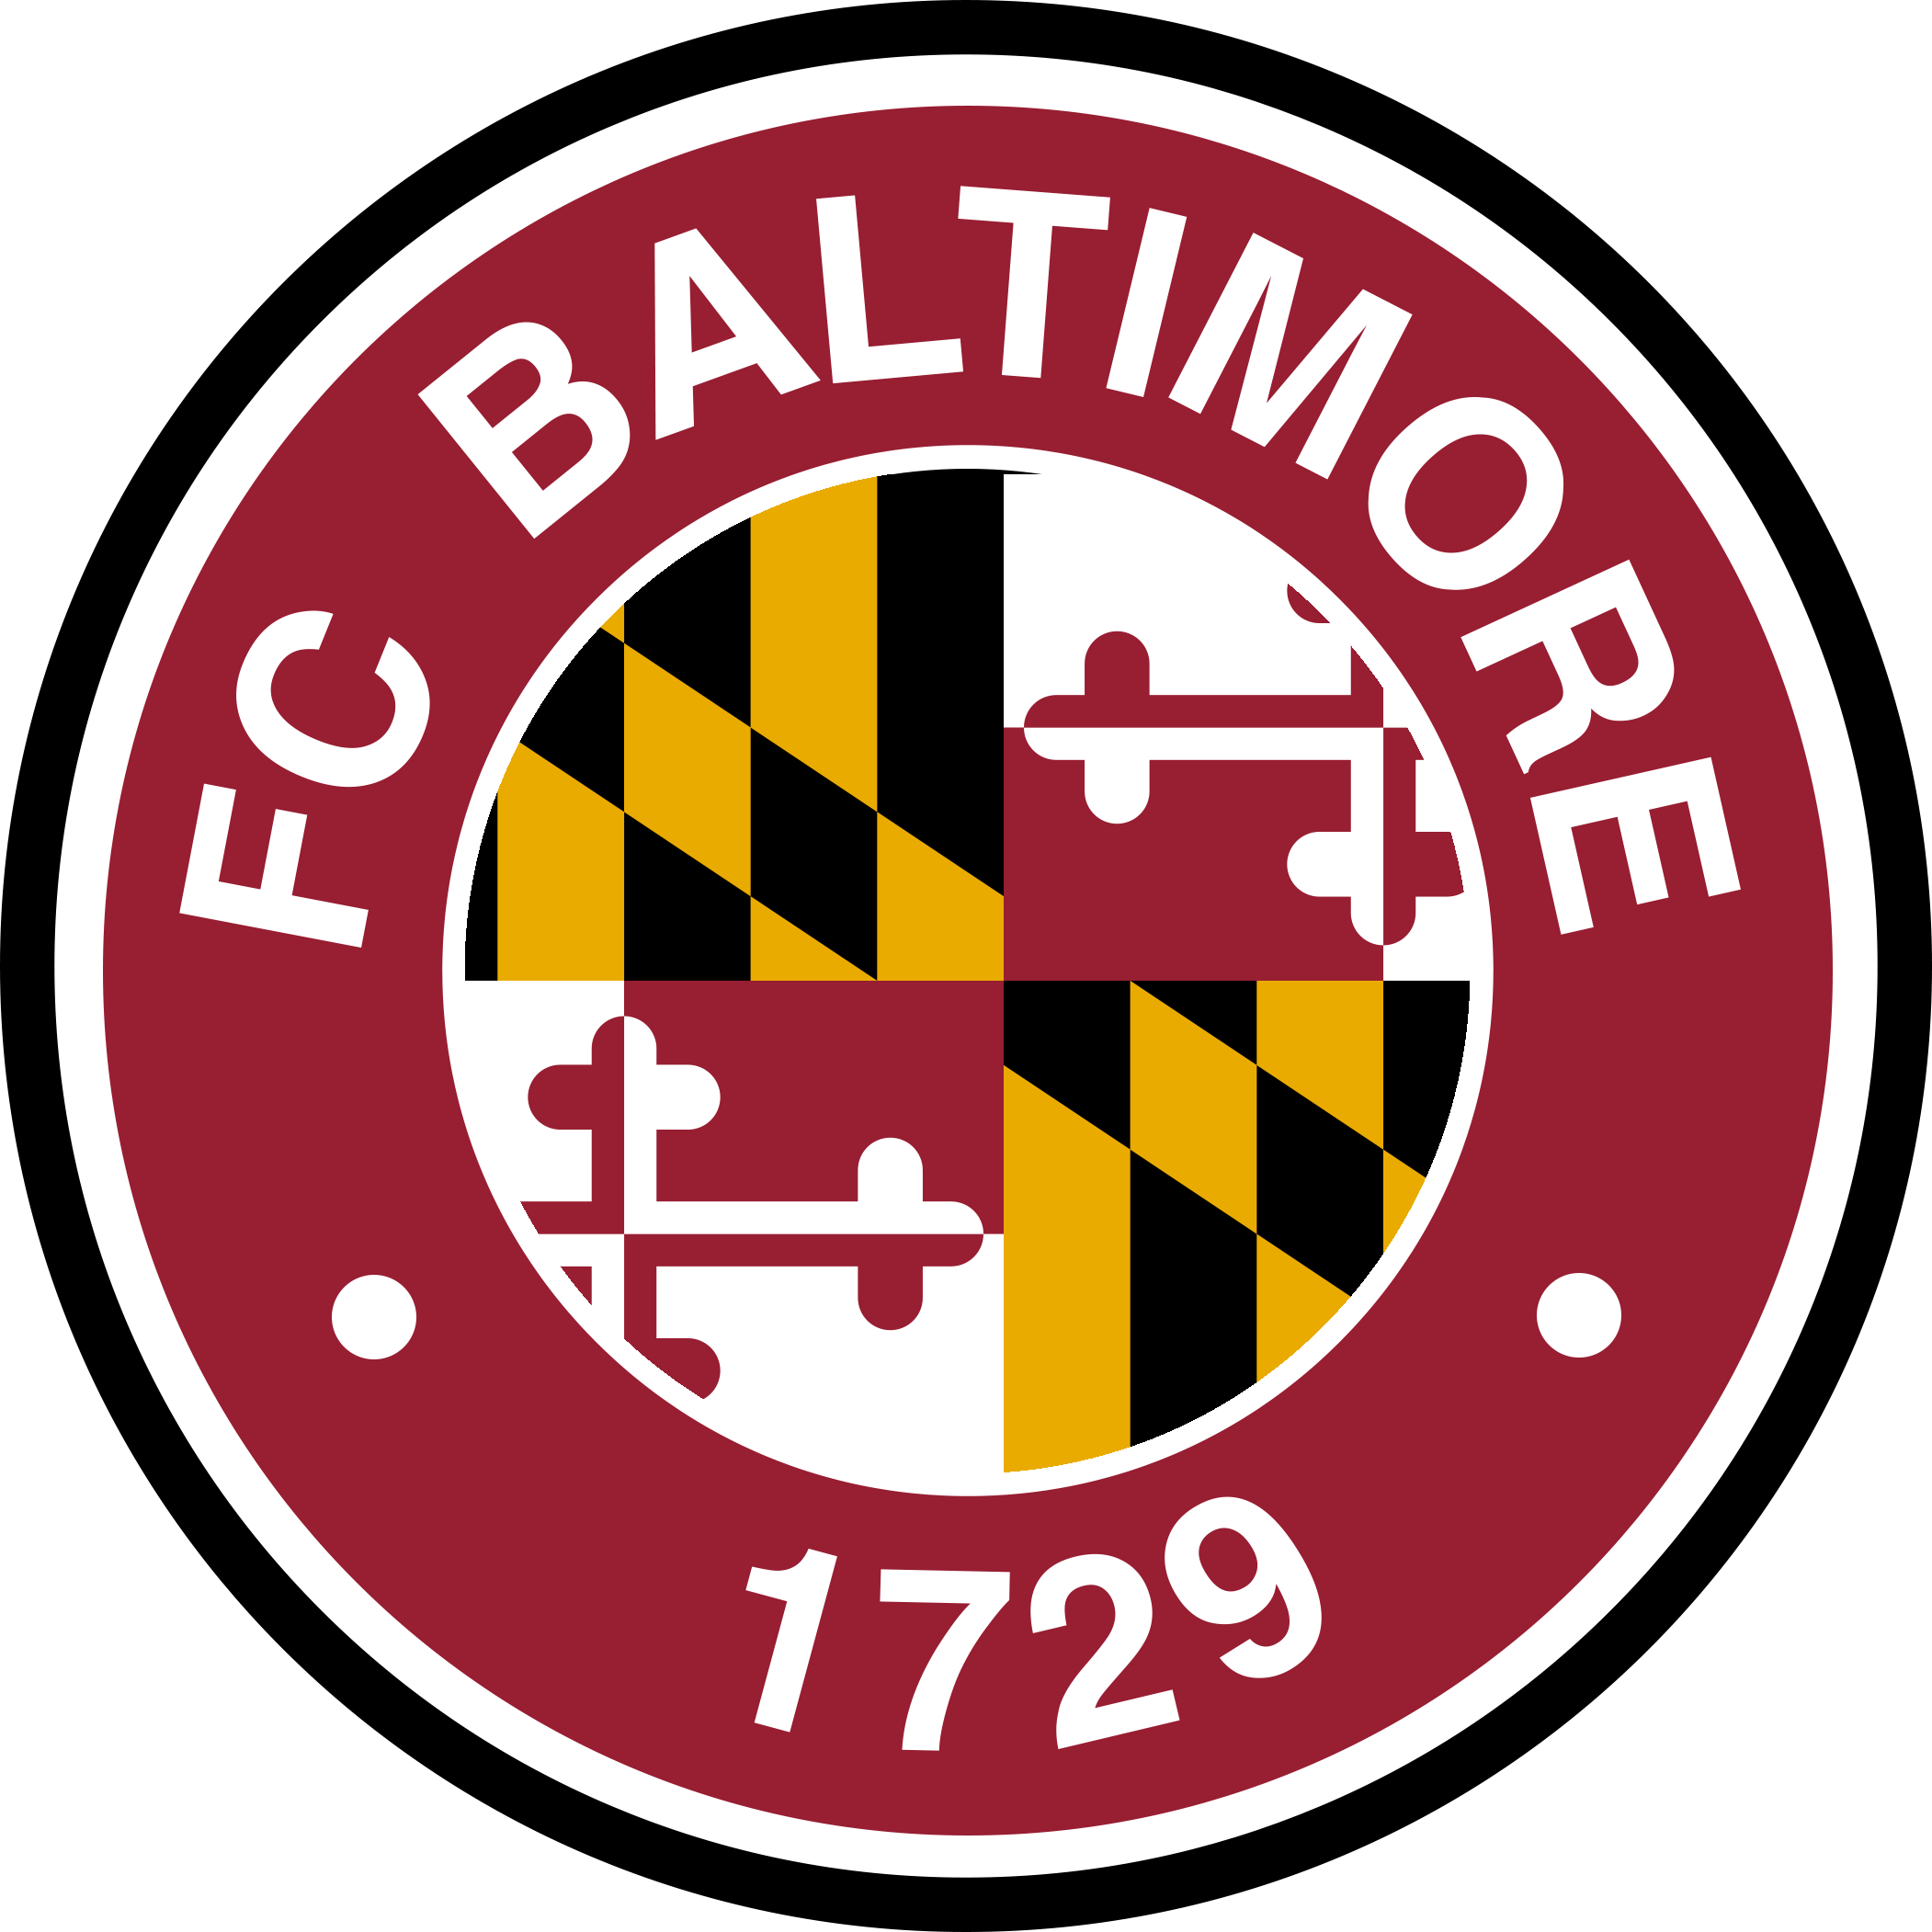 Fc baltimore joins the. Hurt clipart soccer injury